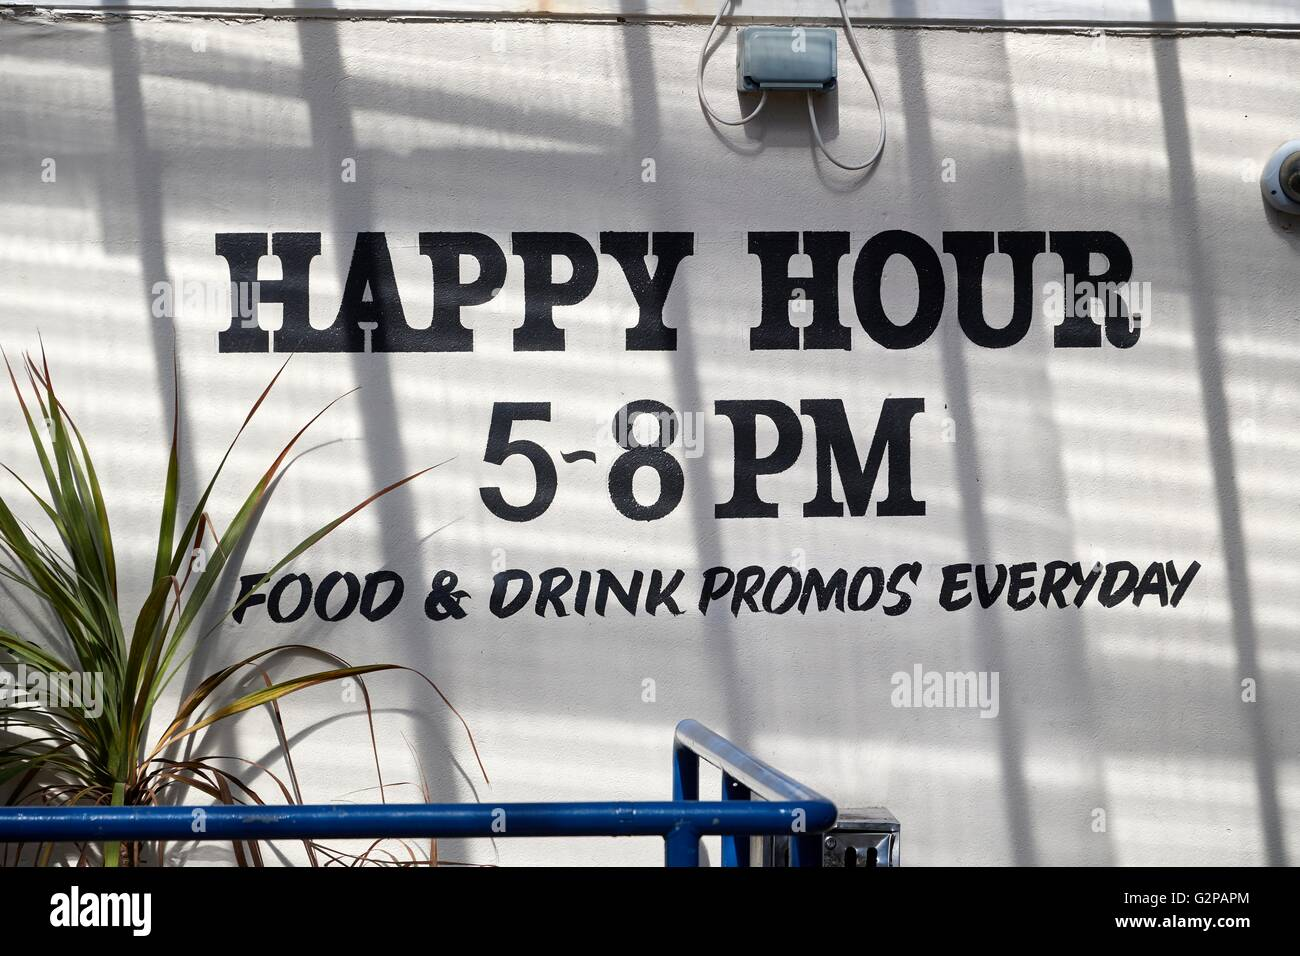 Comical sign outside a public house in Newquay, Cornwall,England - Stock Image